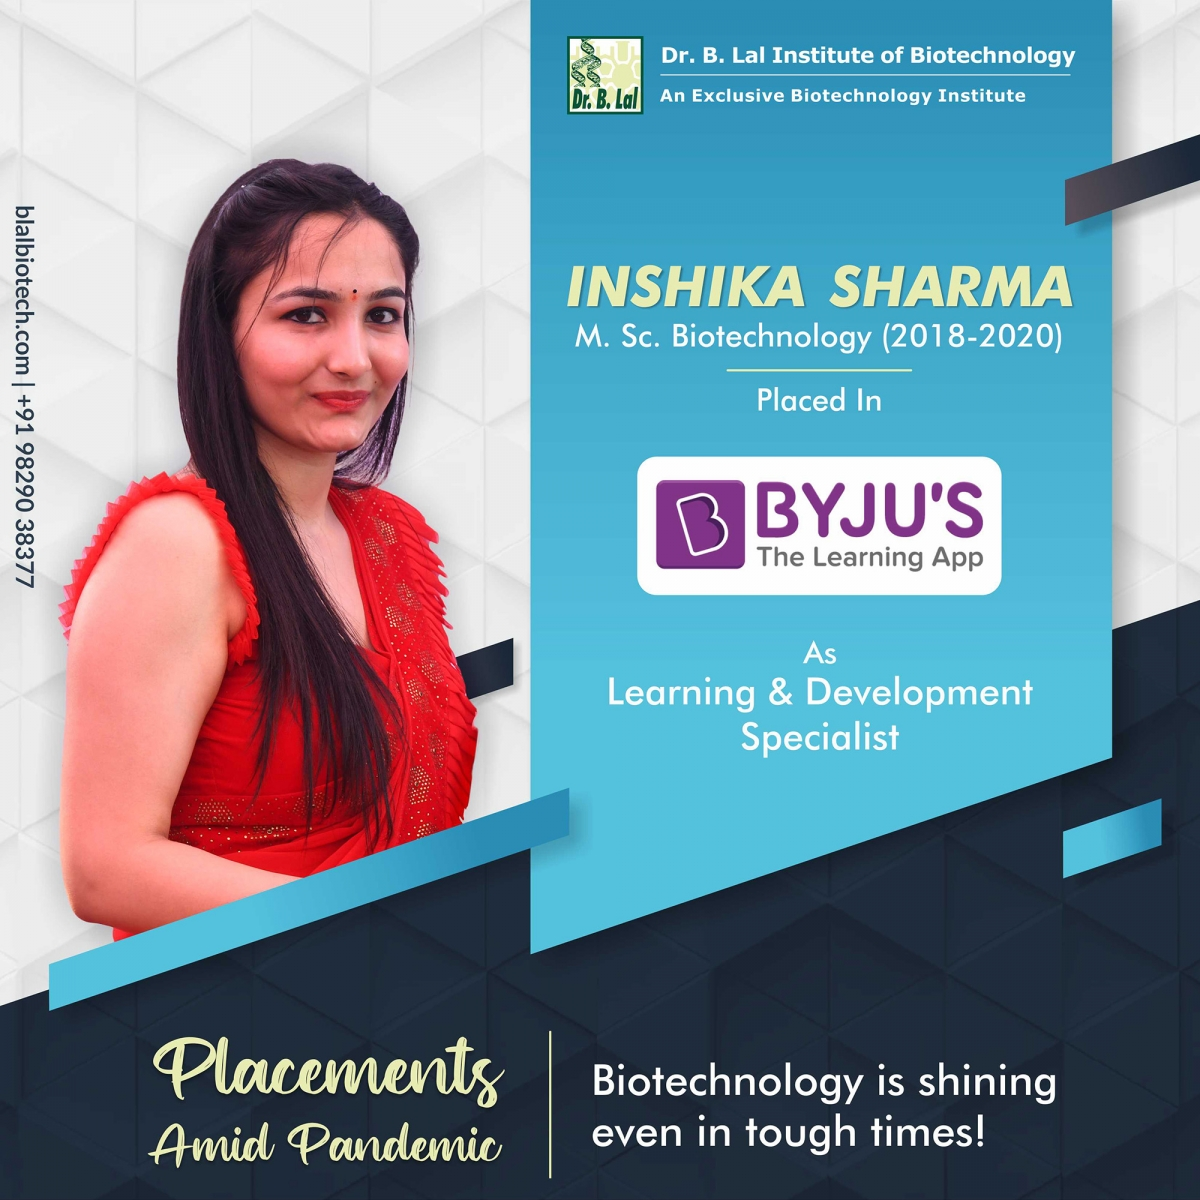 Inshika Sharma | Placements Amid Pandemic | Dr. B. Lal Institute of Biotechnology